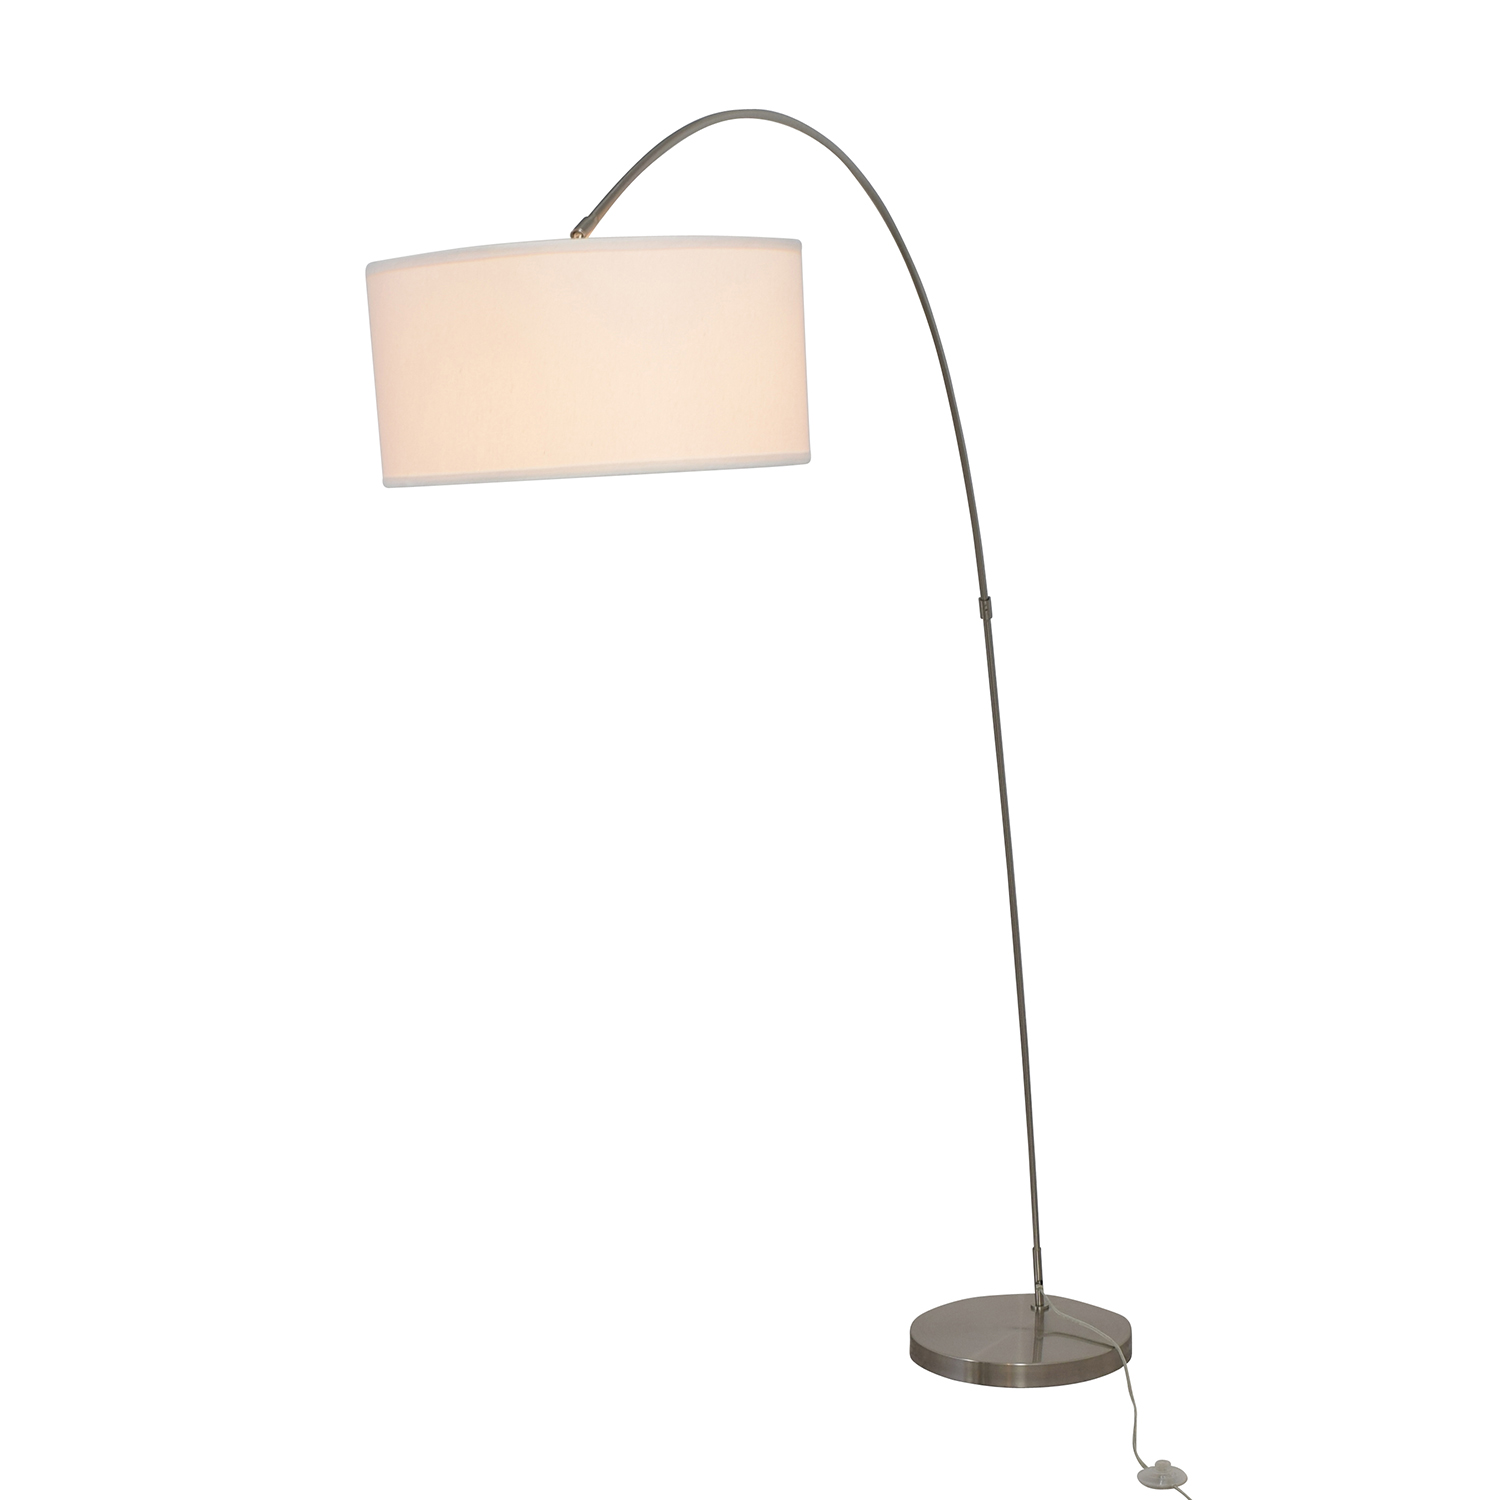 Artiva USA Adelina Floor Arc Lamp sale